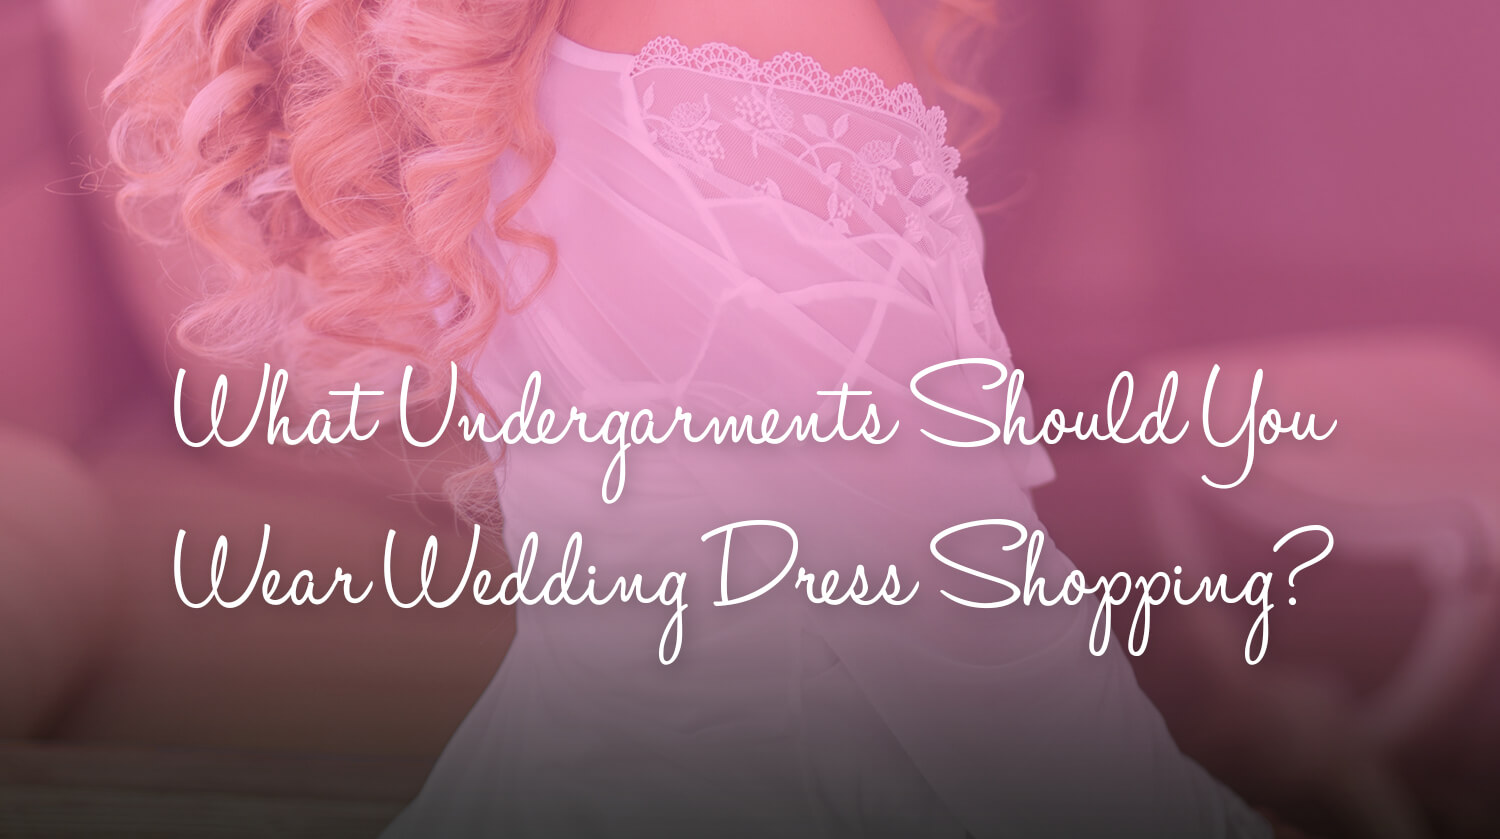 What Undergarments Should You Wear Wedding Dress Shopping